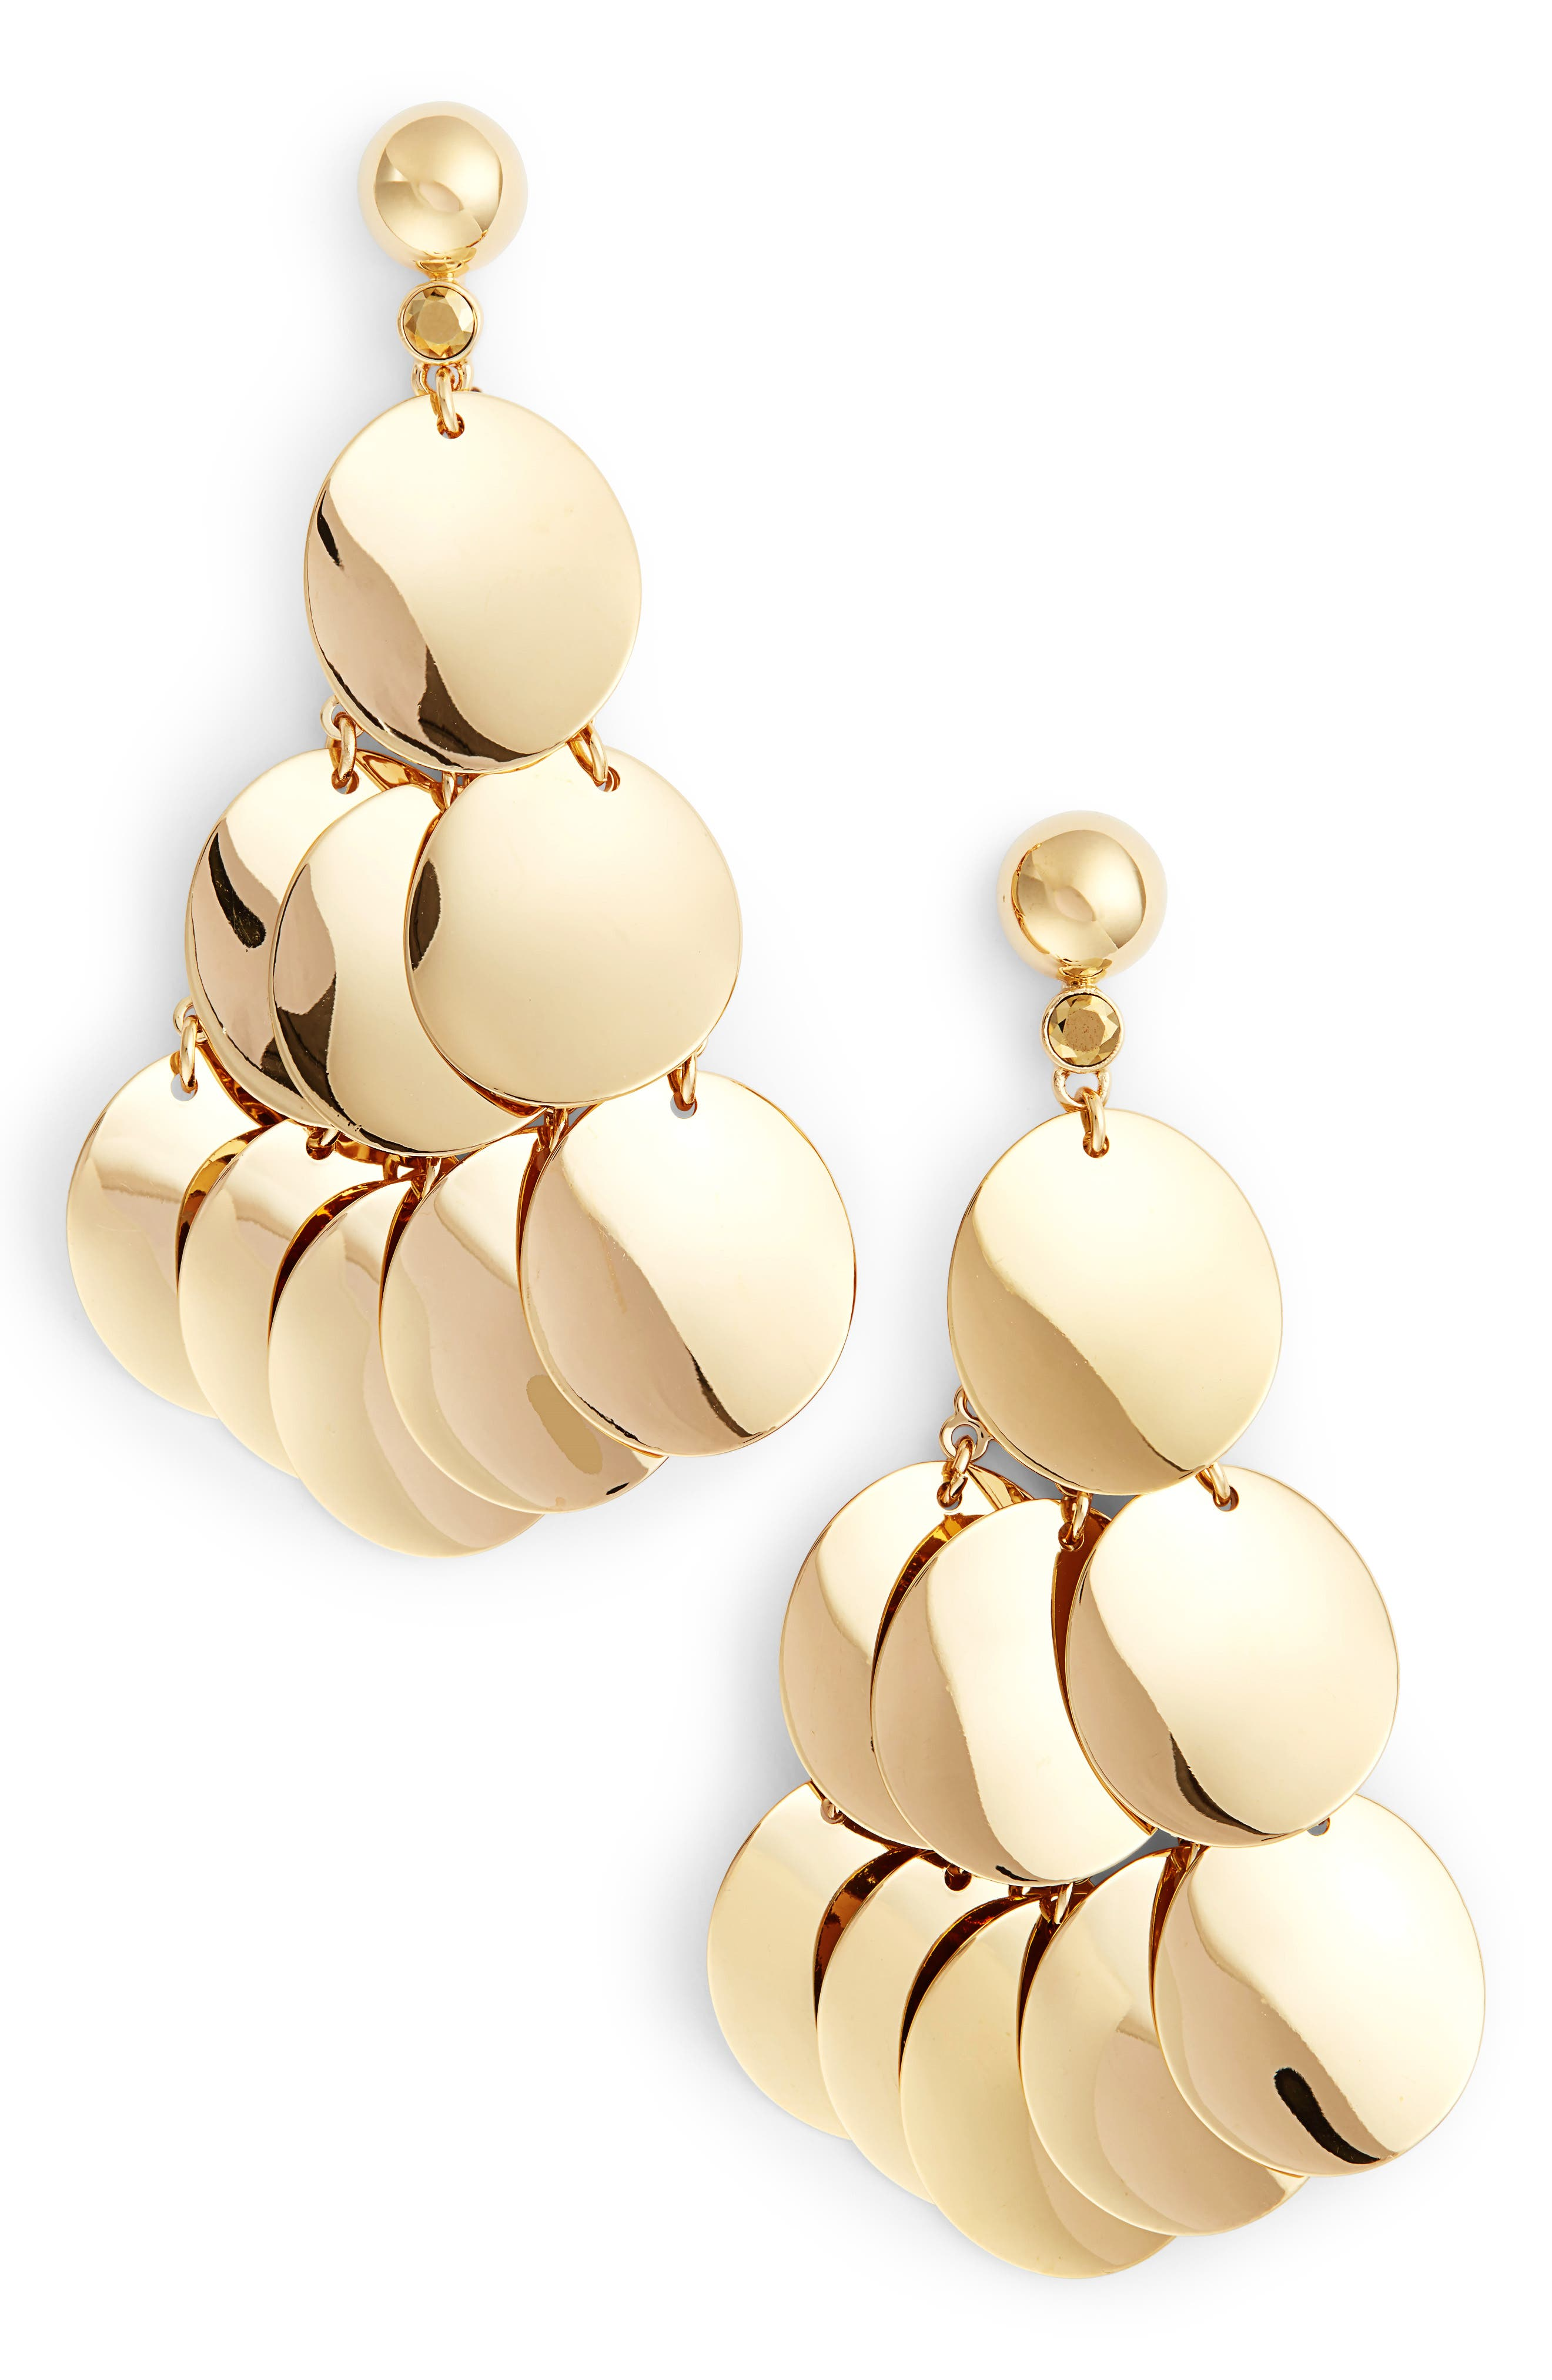 gold standard statement earrings,                             Main thumbnail 1, color,                             711